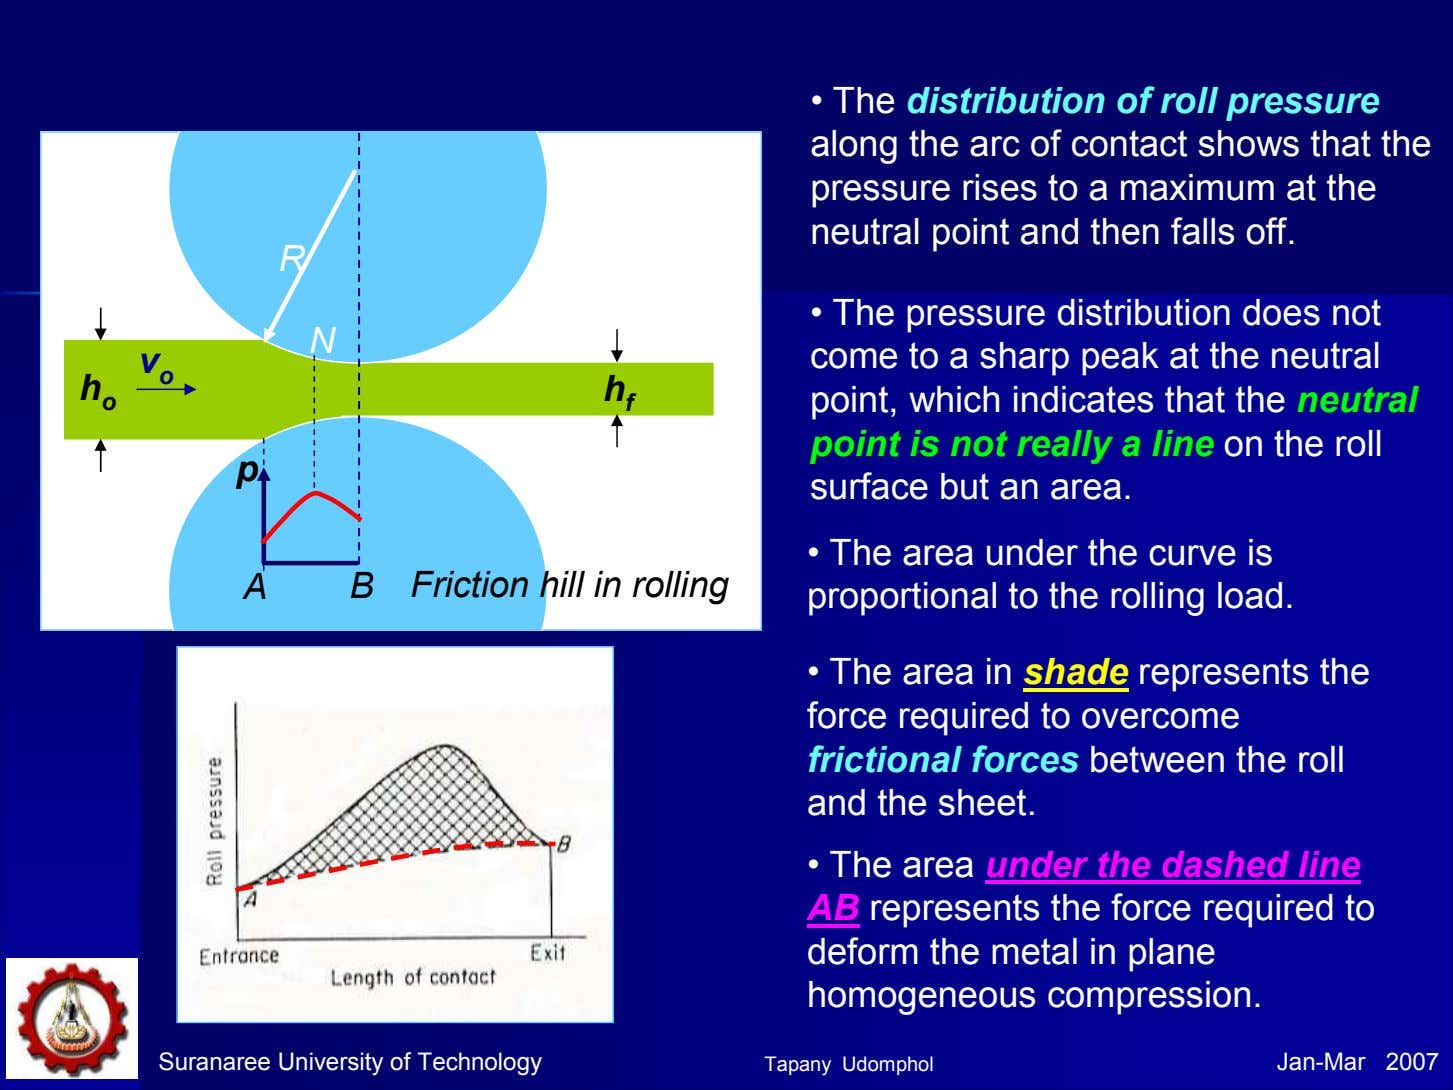 • The distribution of roll pressure along the arc of contact shows that the pressure